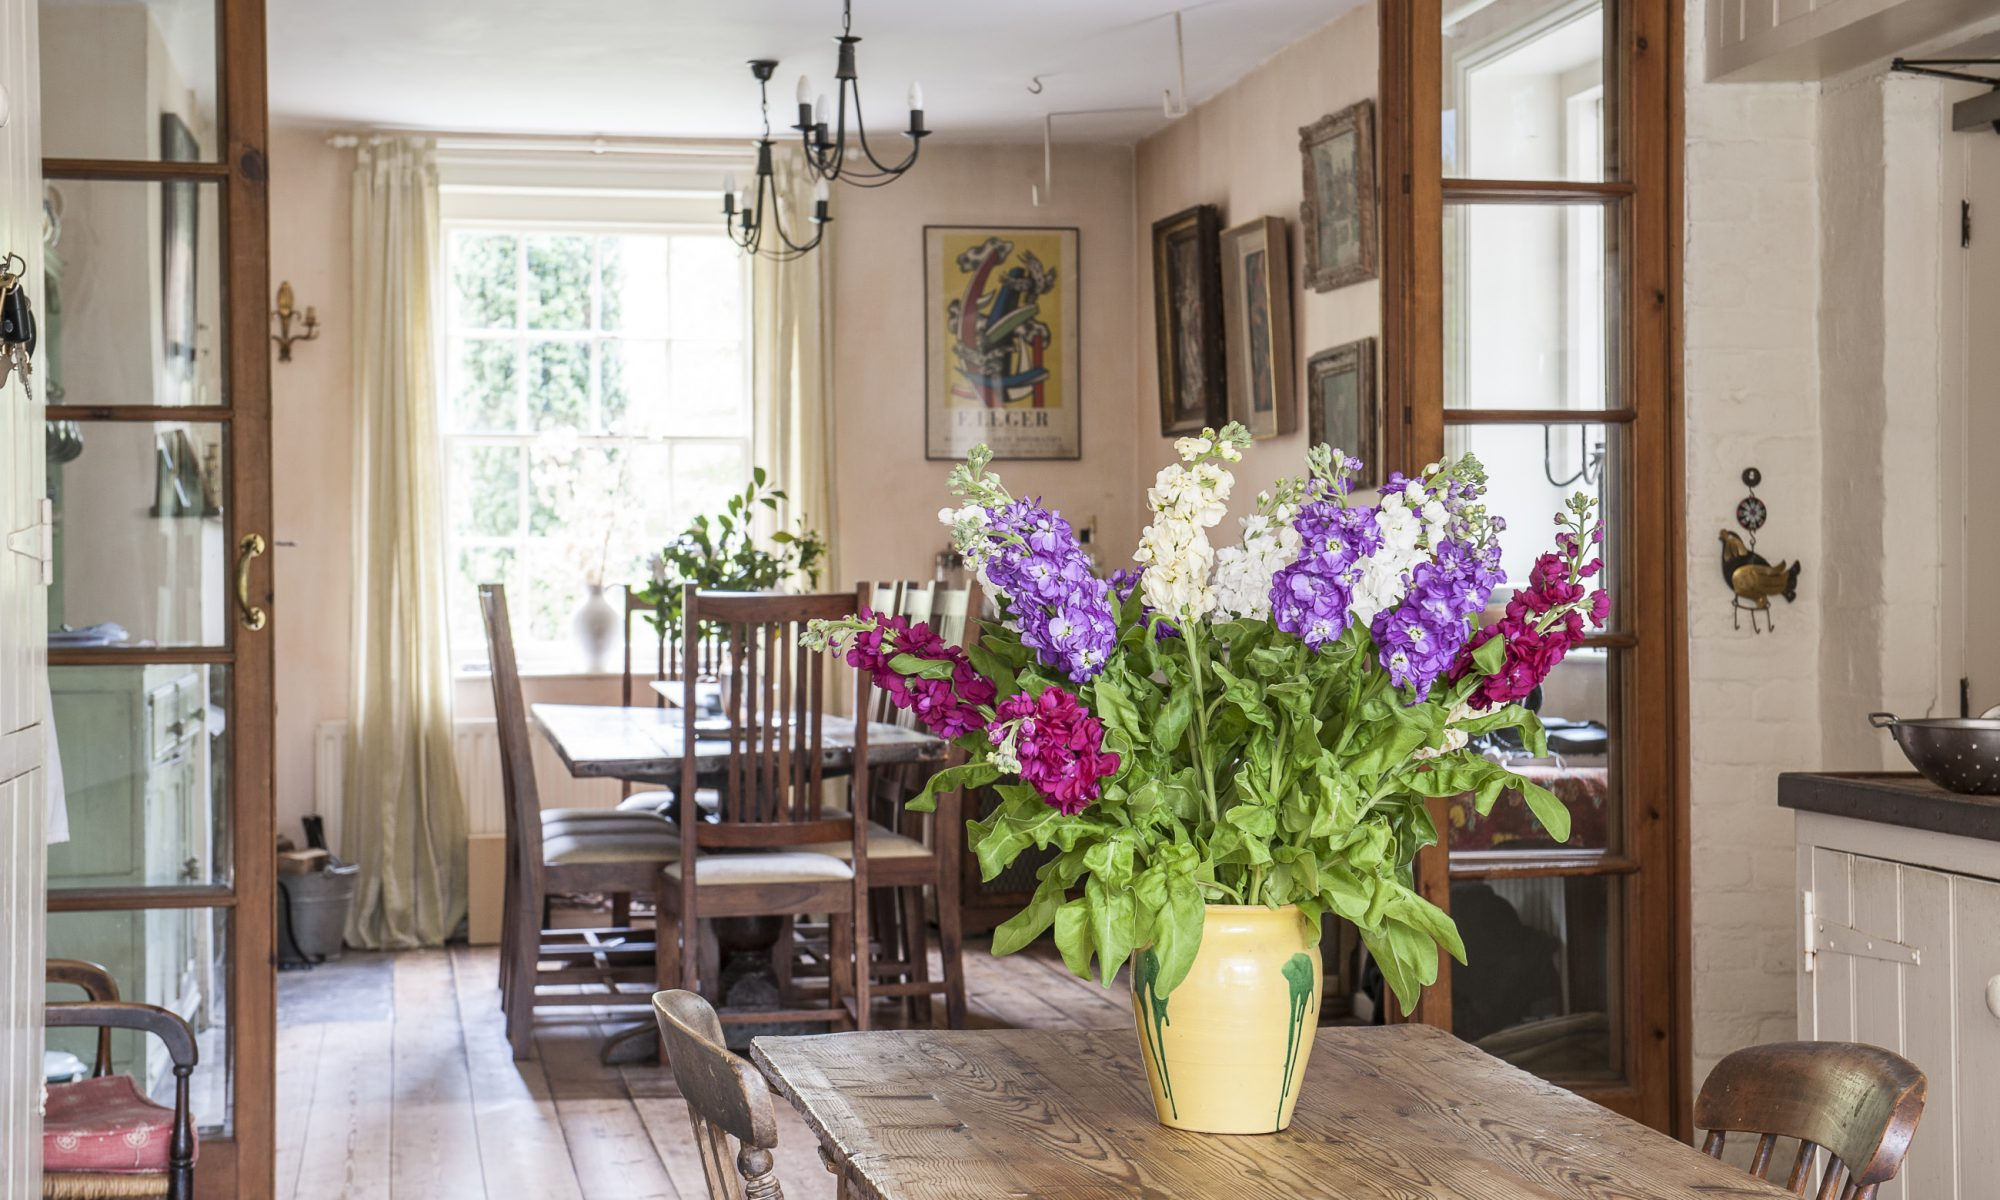 In light of the release of her new book Have You Been Good? Vanessa Nicolson shows Wealden Times around the house that was once owned by her grandparents, Vita Sackville-West and Harold Nicolson. Following a few alterations, Vanessa has created a beautiful family home surrounded by stunning gardens tended by her husband, avid plant collector Andrew Davidson...